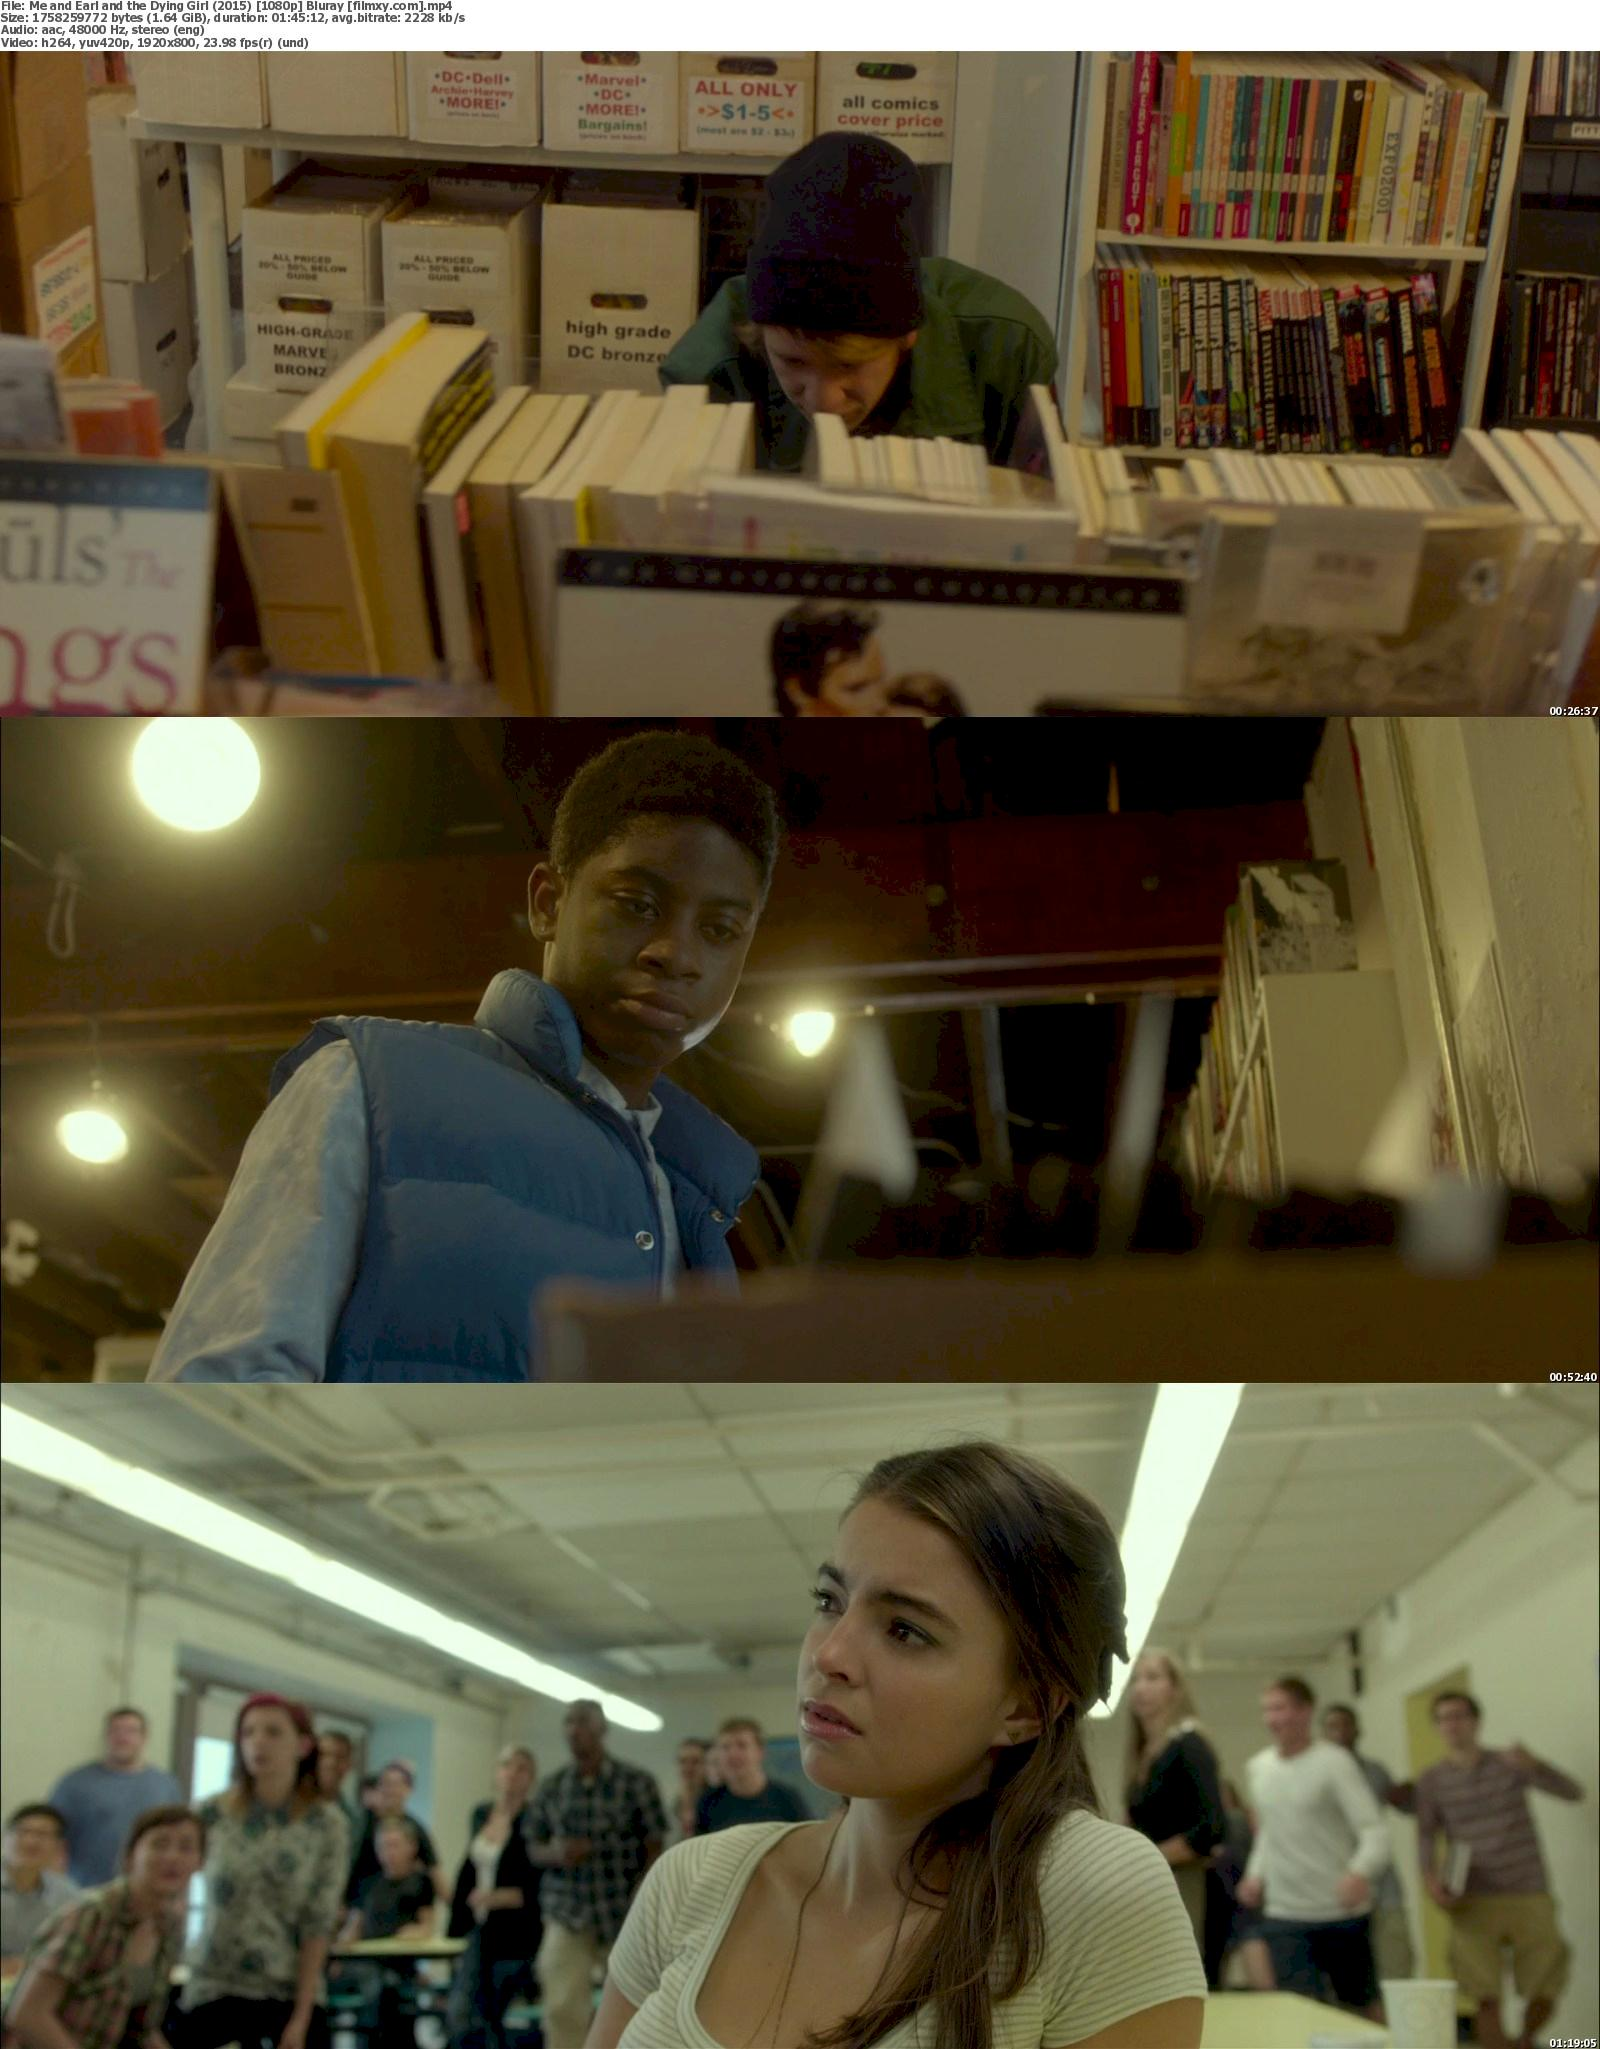 Me and Earl and the Dying Girl (2015) 720p & 1080p Bluray Free Download 1080p Screenshot